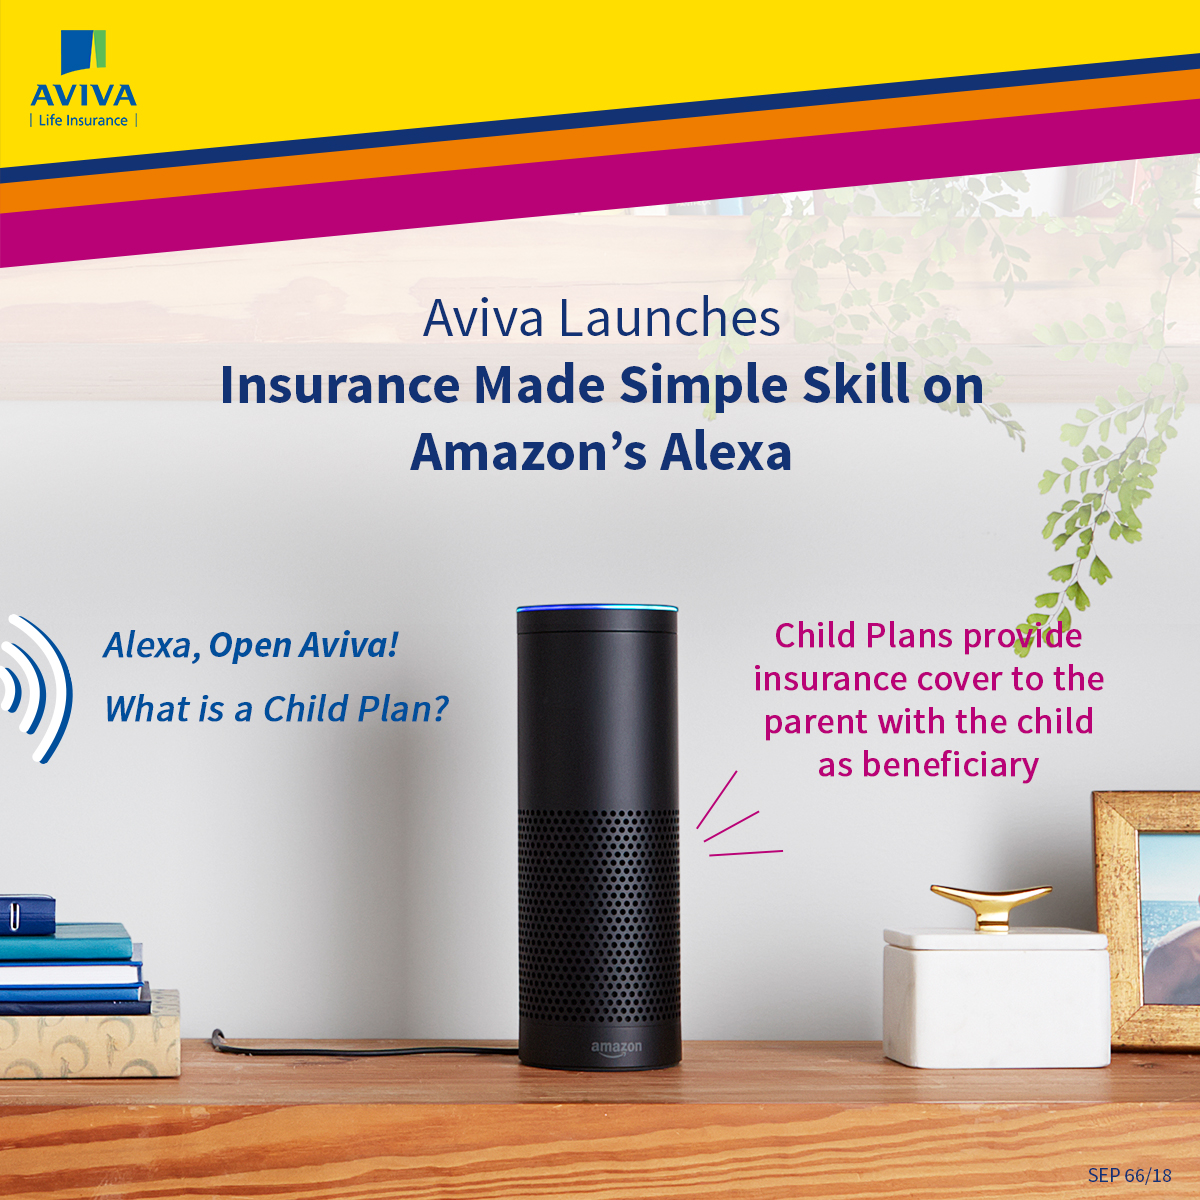 Aviva is now on Alexa with - Insurance Made Simple skill! Let's make insurance easier than ever!